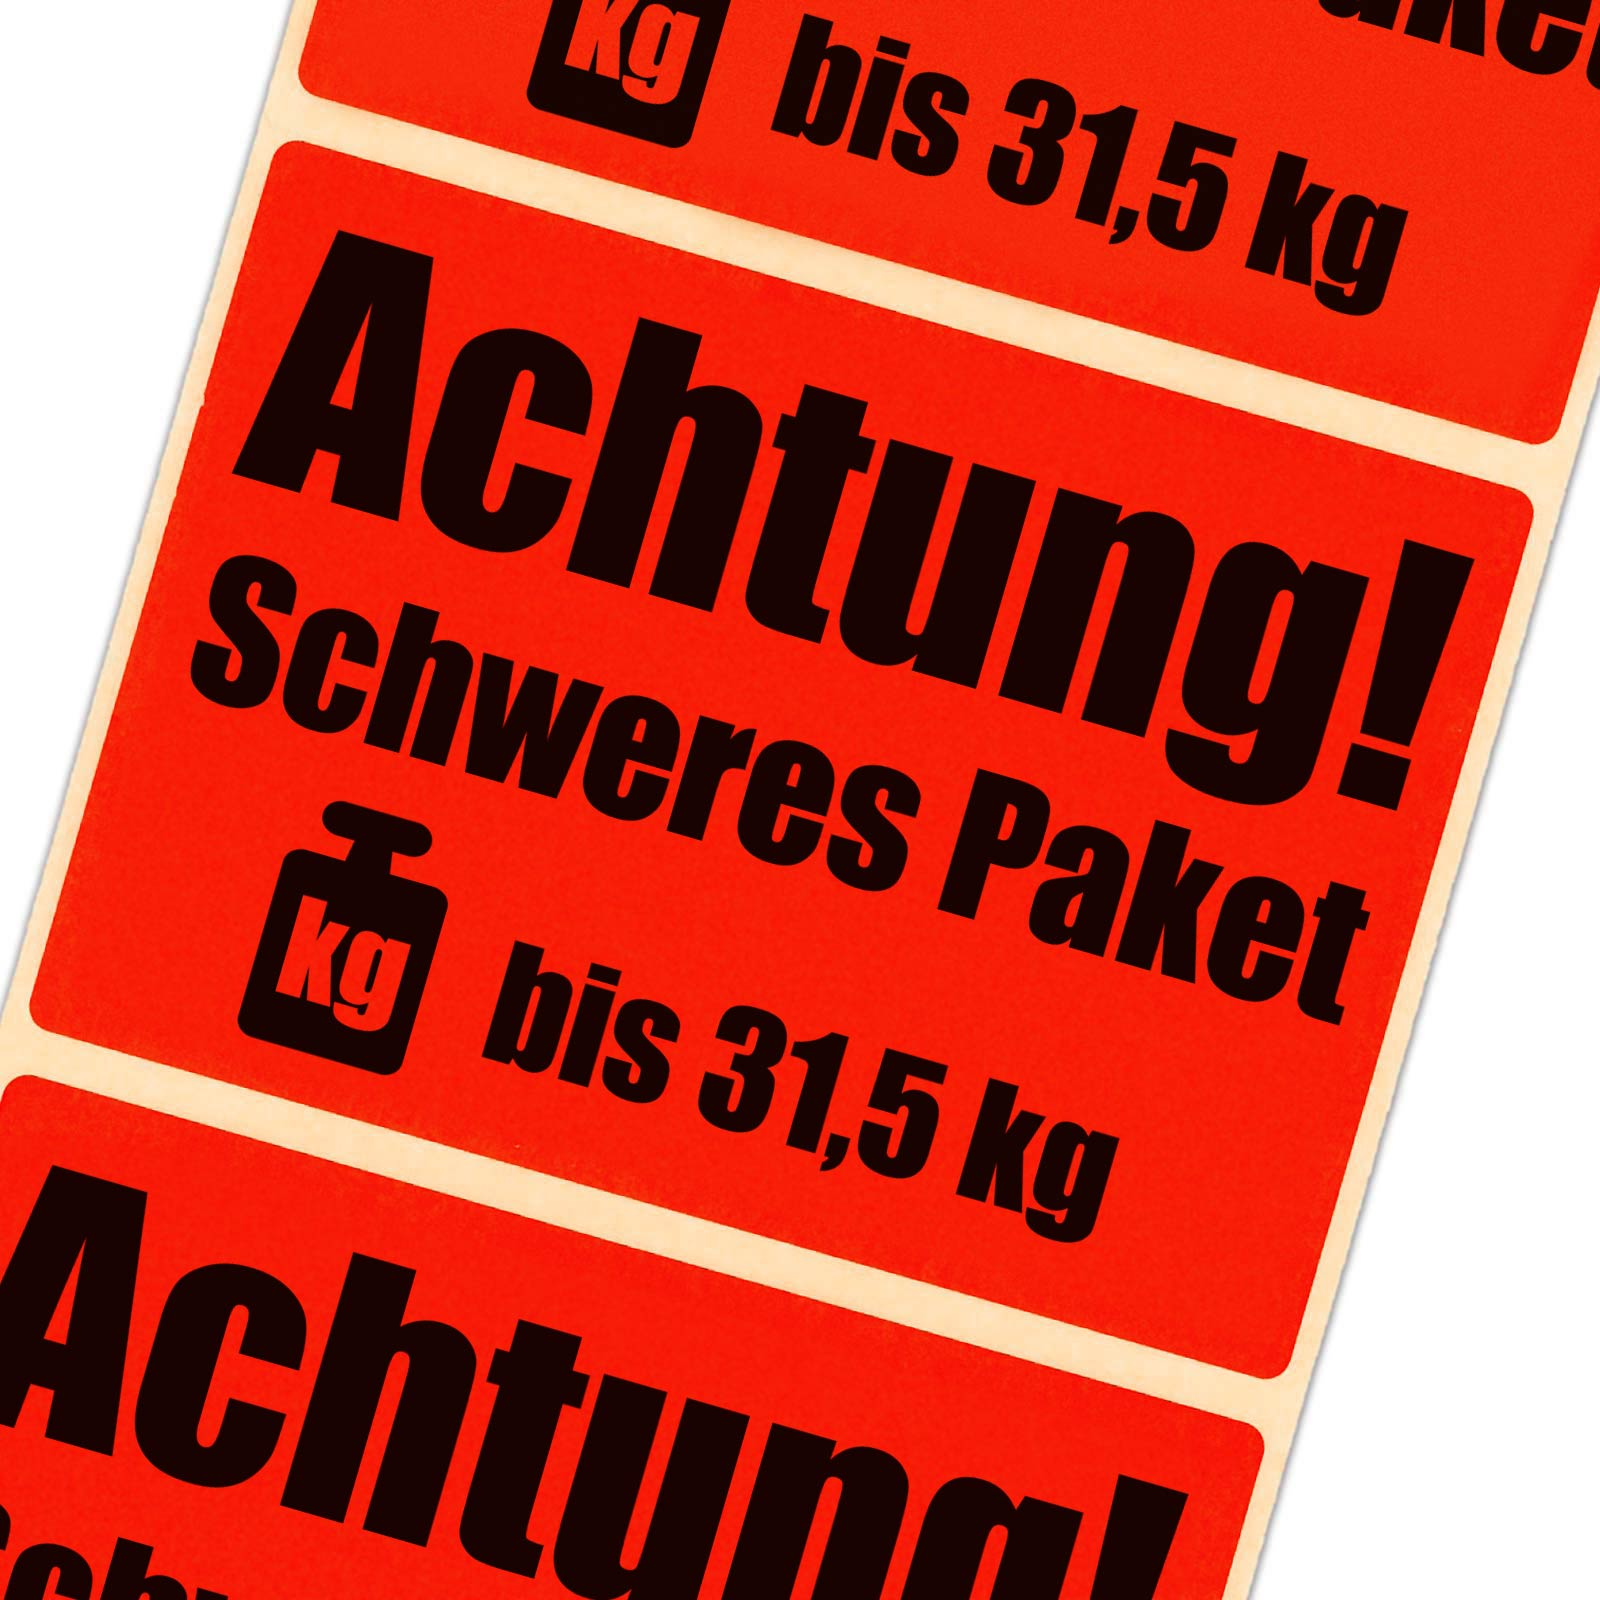 etiketten achtung schweres paket bis 31 5 kg leuchtend rot haftpapier 105 x 72 ebay. Black Bedroom Furniture Sets. Home Design Ideas